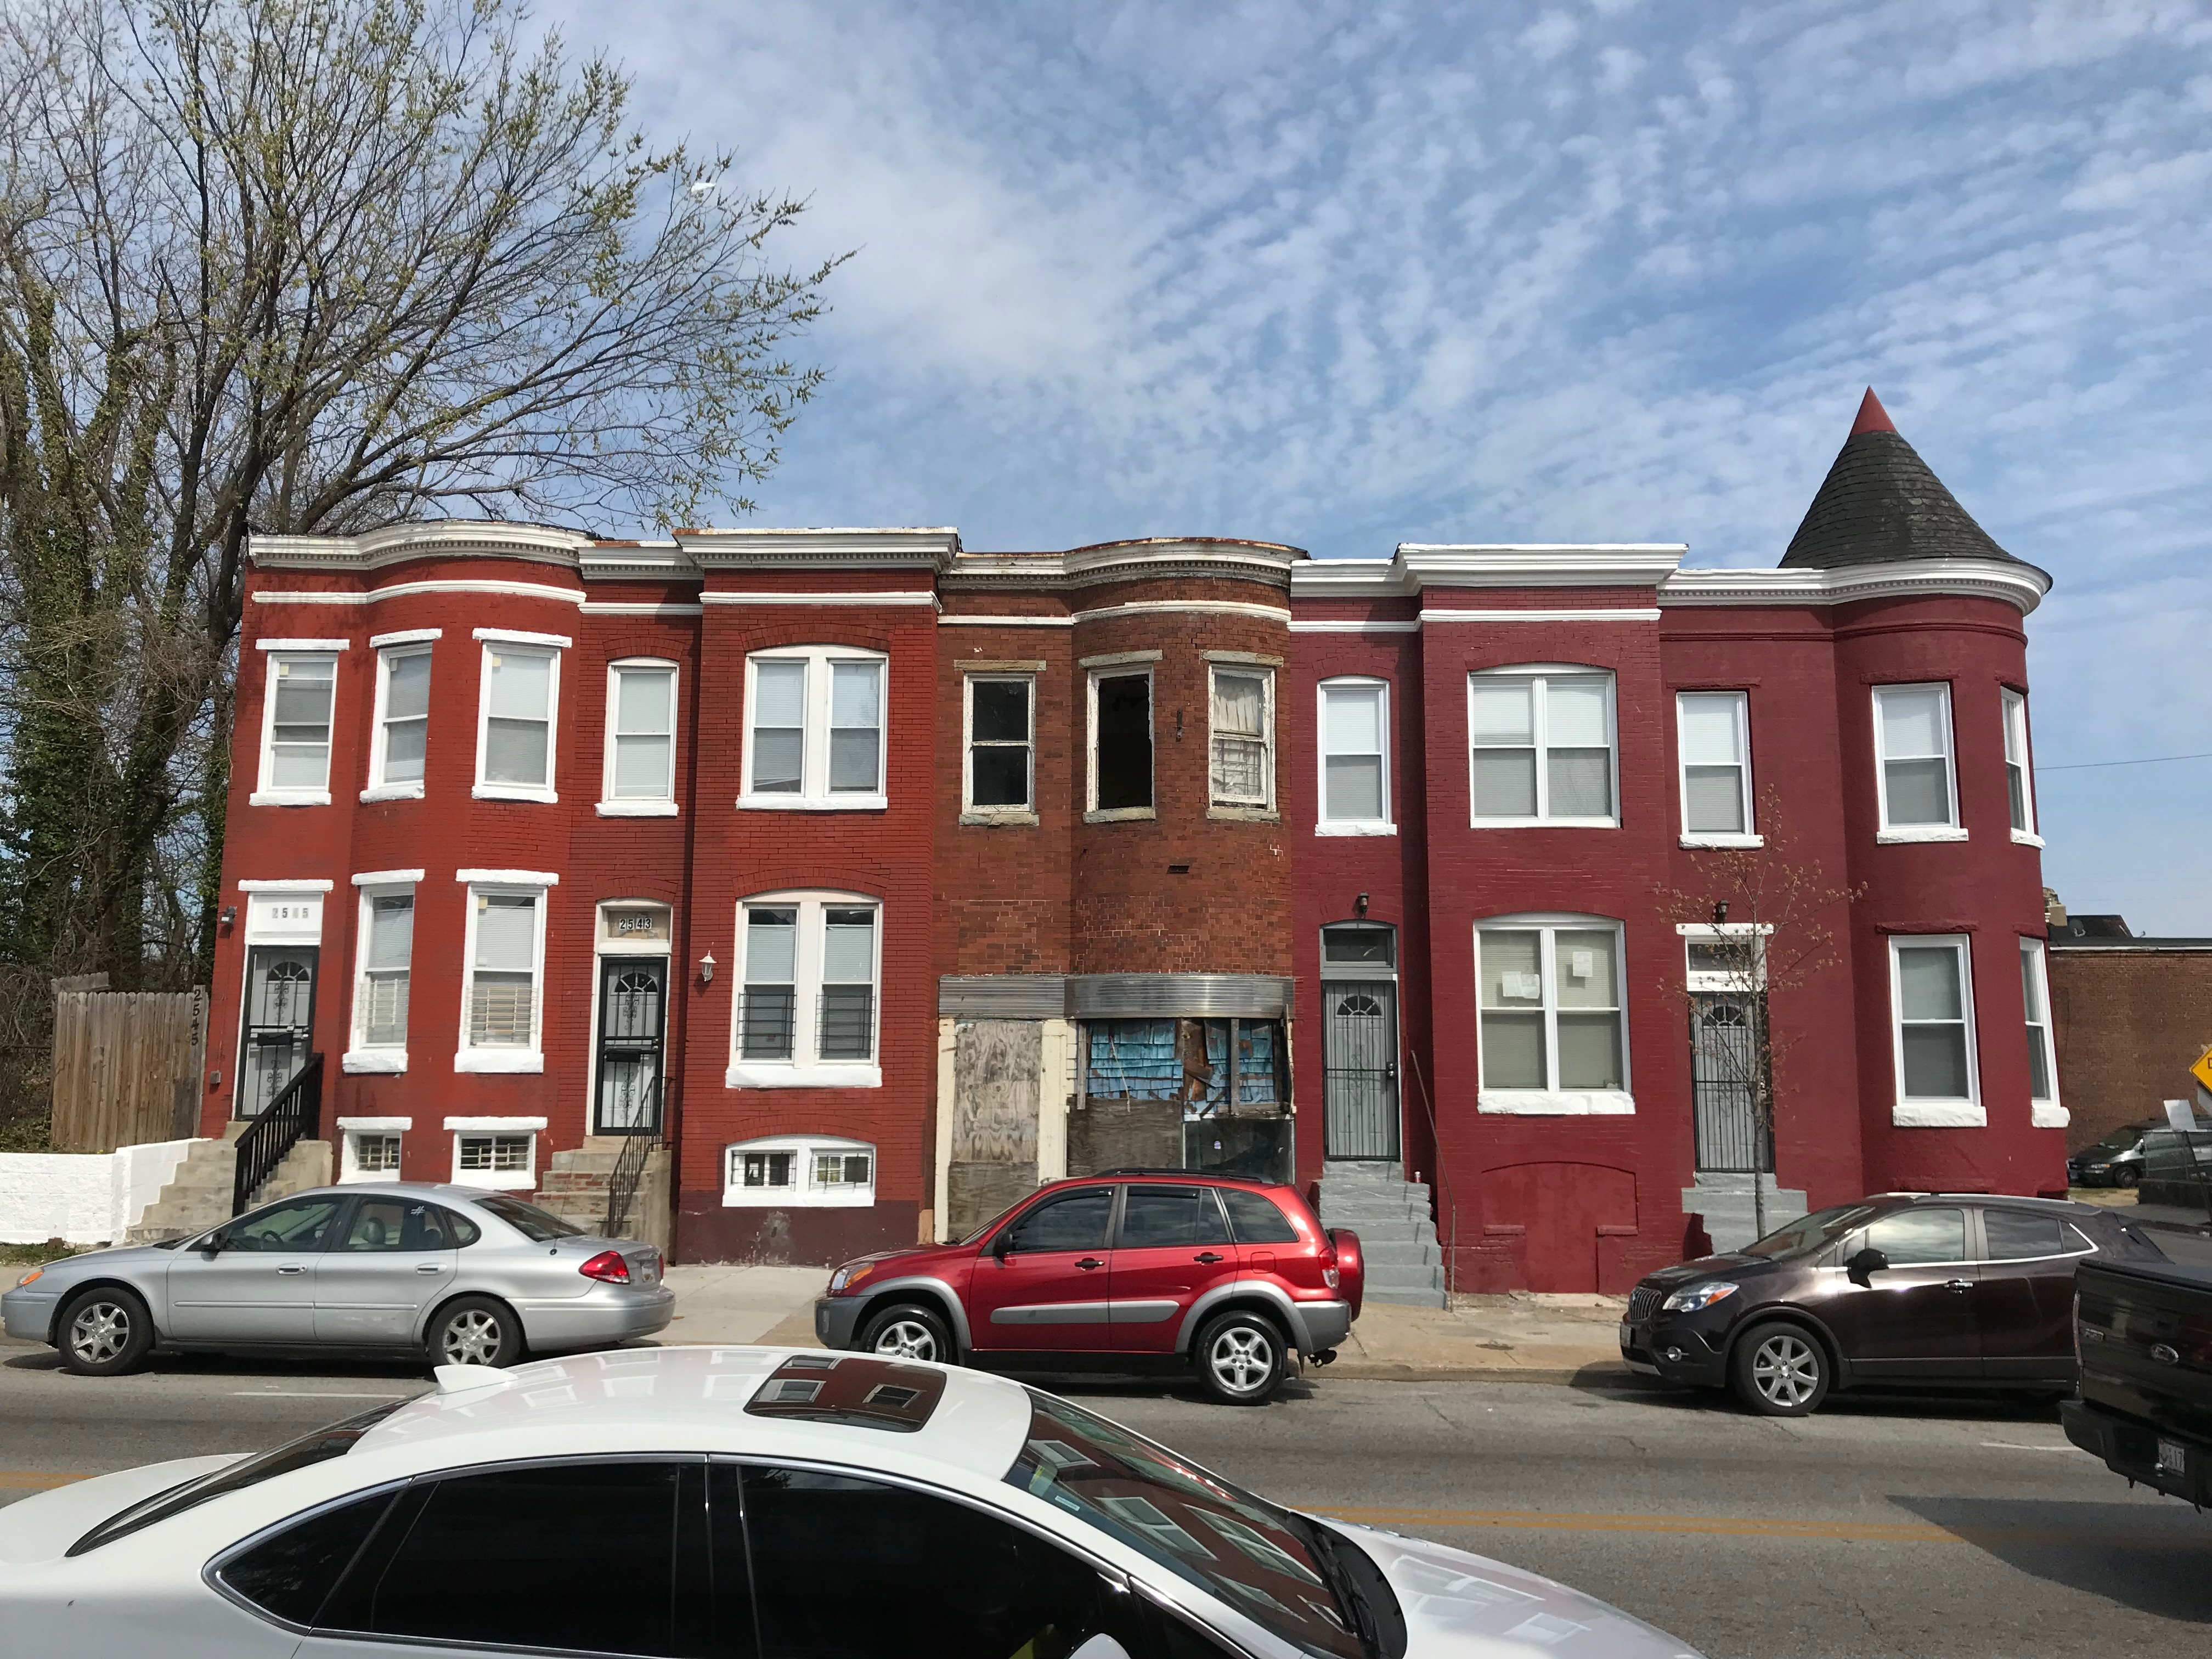 Rowhouses, 2537-2545 greenmount avenue, baltimore, md 21218 photo